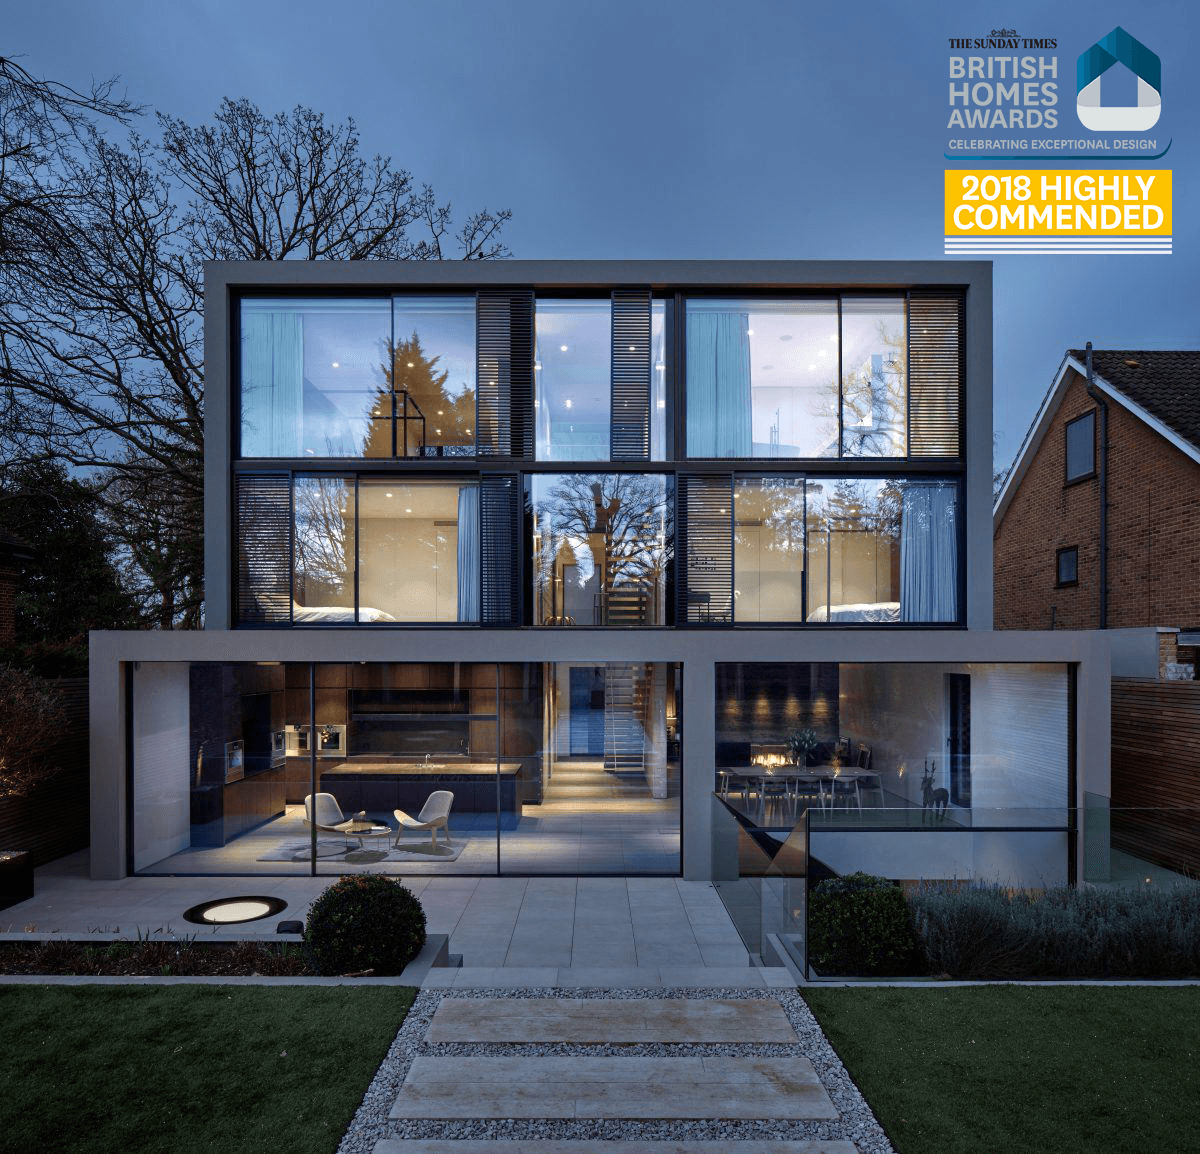 Kenwood Lee House has received a 'Highly Commended' award at the Sunday Times British Homes Awards 2018